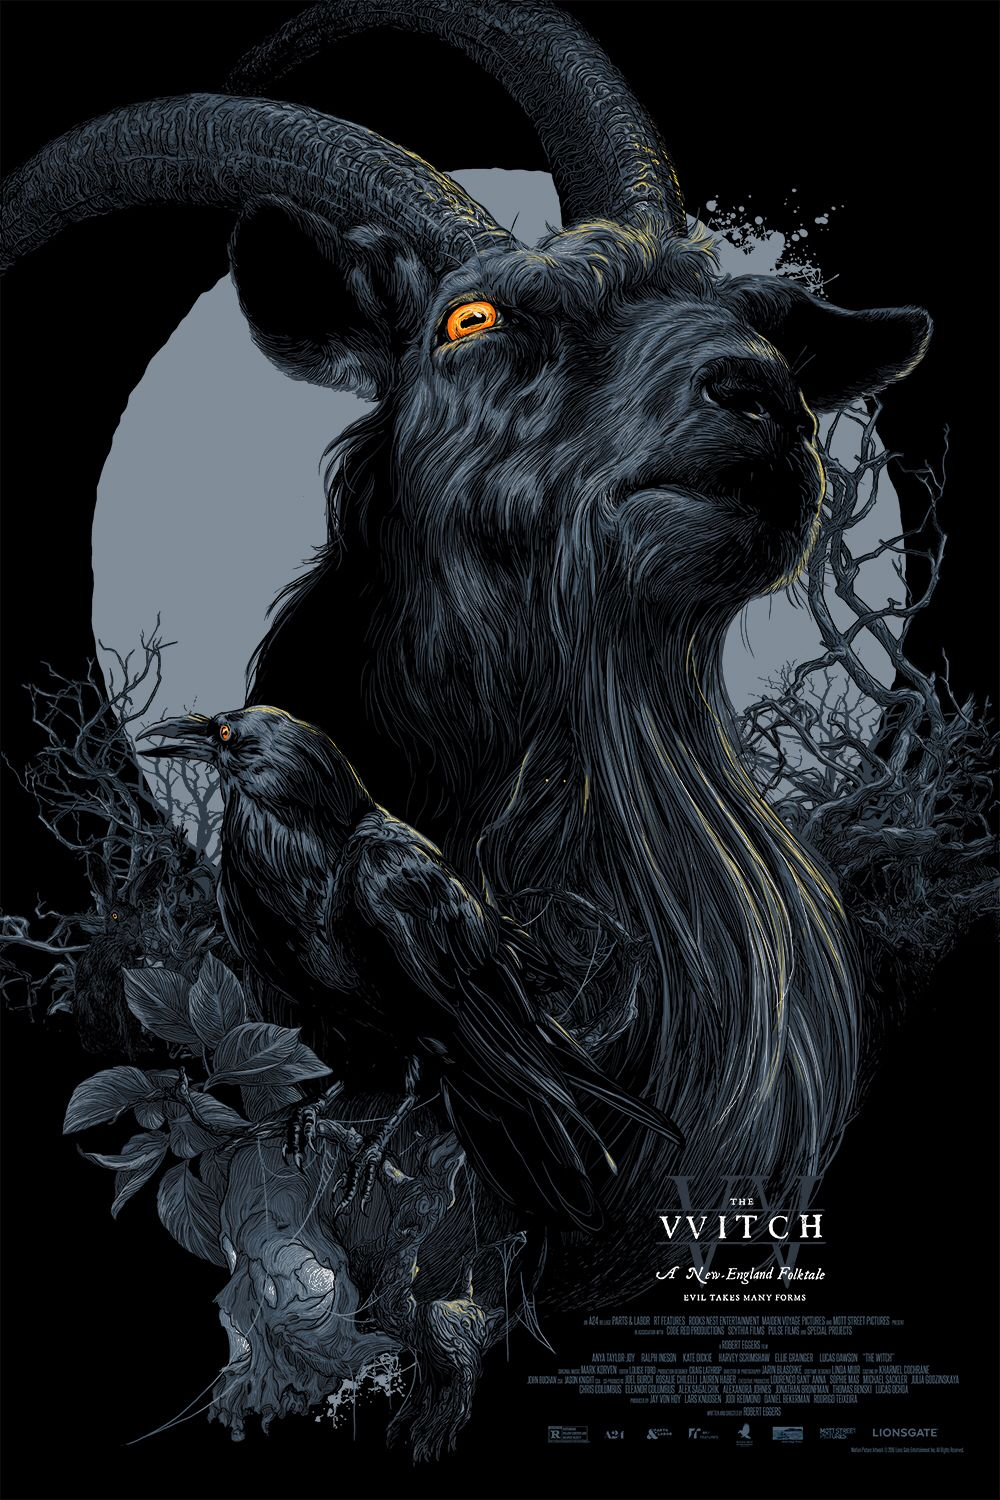 Immagine di http://www.liveforfilm.com/wp-content/uploads/2016/05/the-witch-1.jpg.